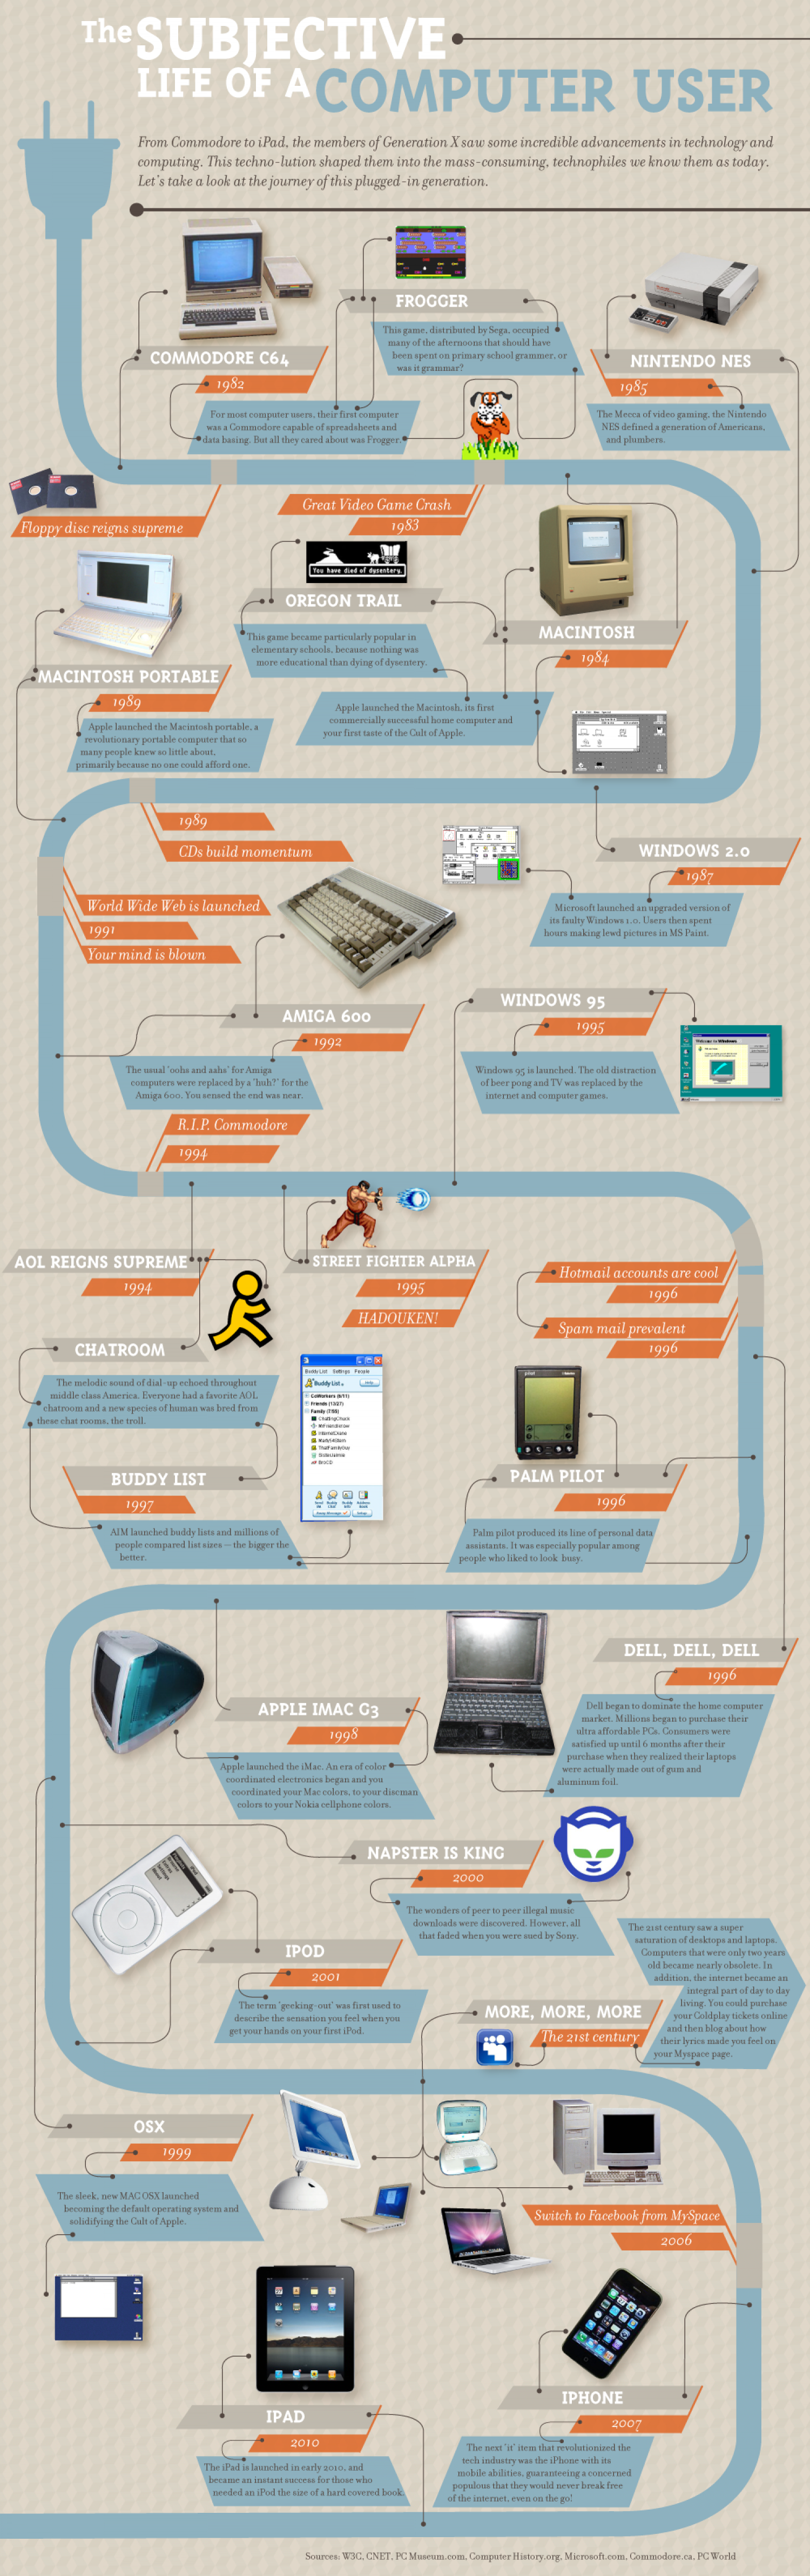 The Subjective Life of a Computer User Infographic